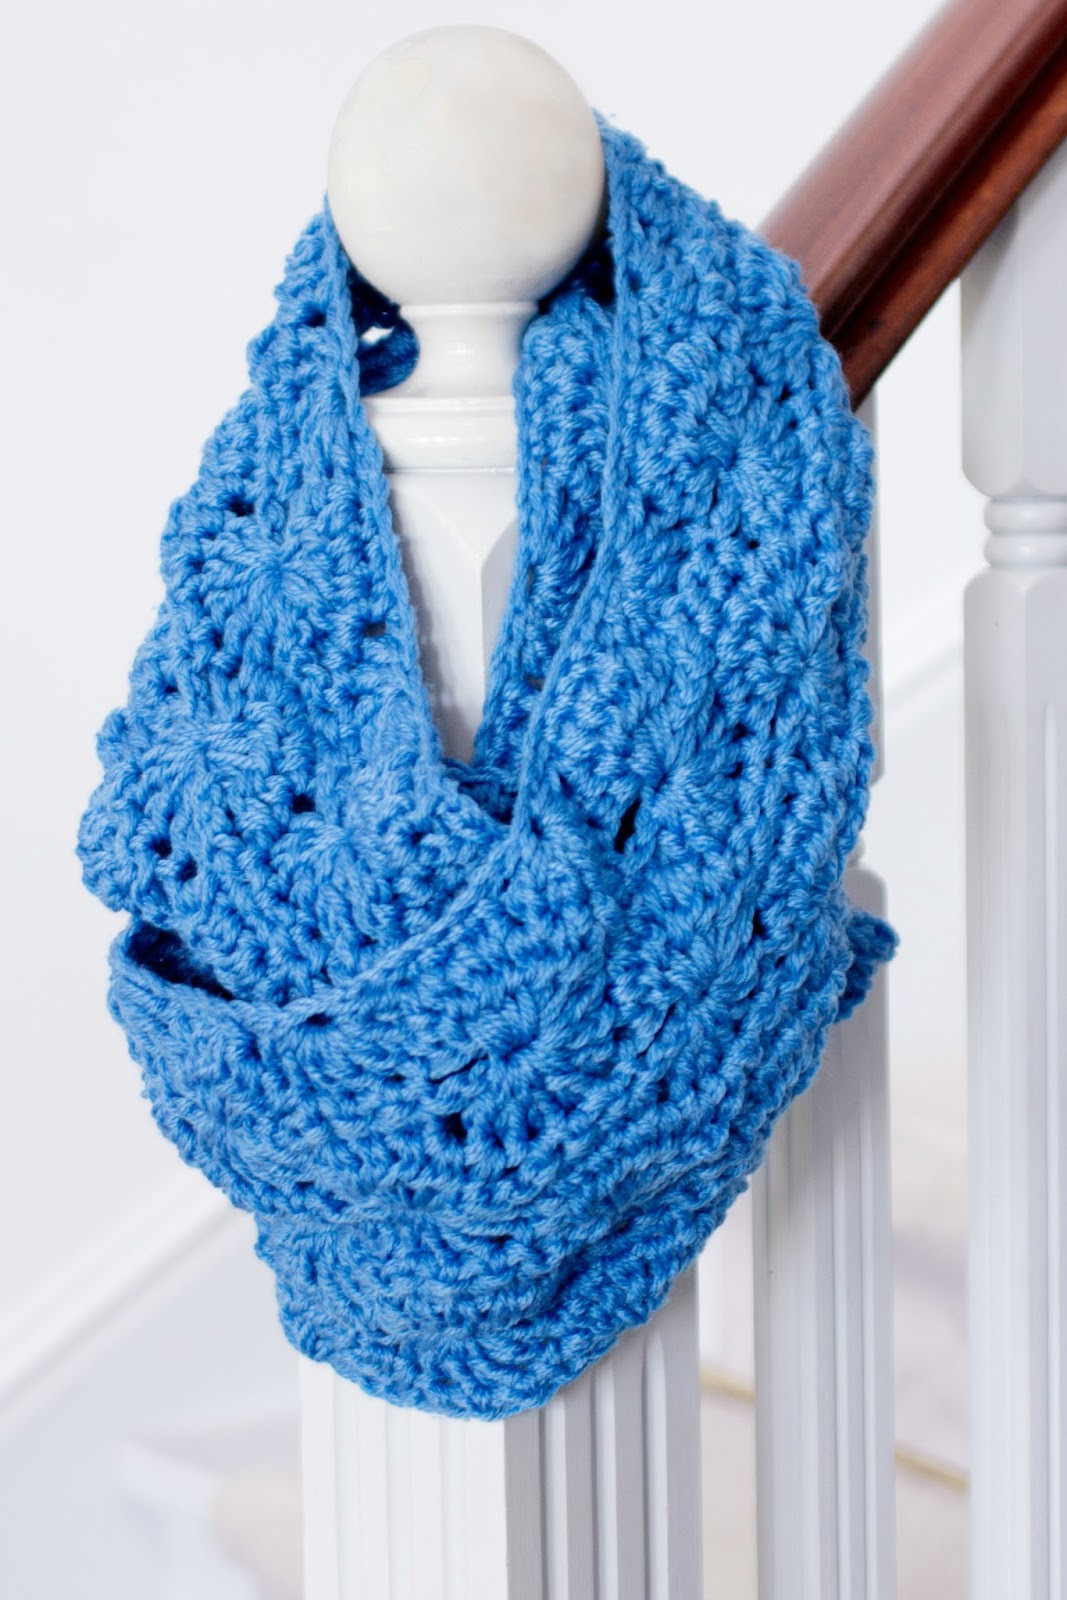 Fresh Beneficial Scarf Crochet Patterns Cottageartcreations Crochet A Shawl Of Beautiful Cornflower Blue Free Crochet Pattern Crochet A Shawl